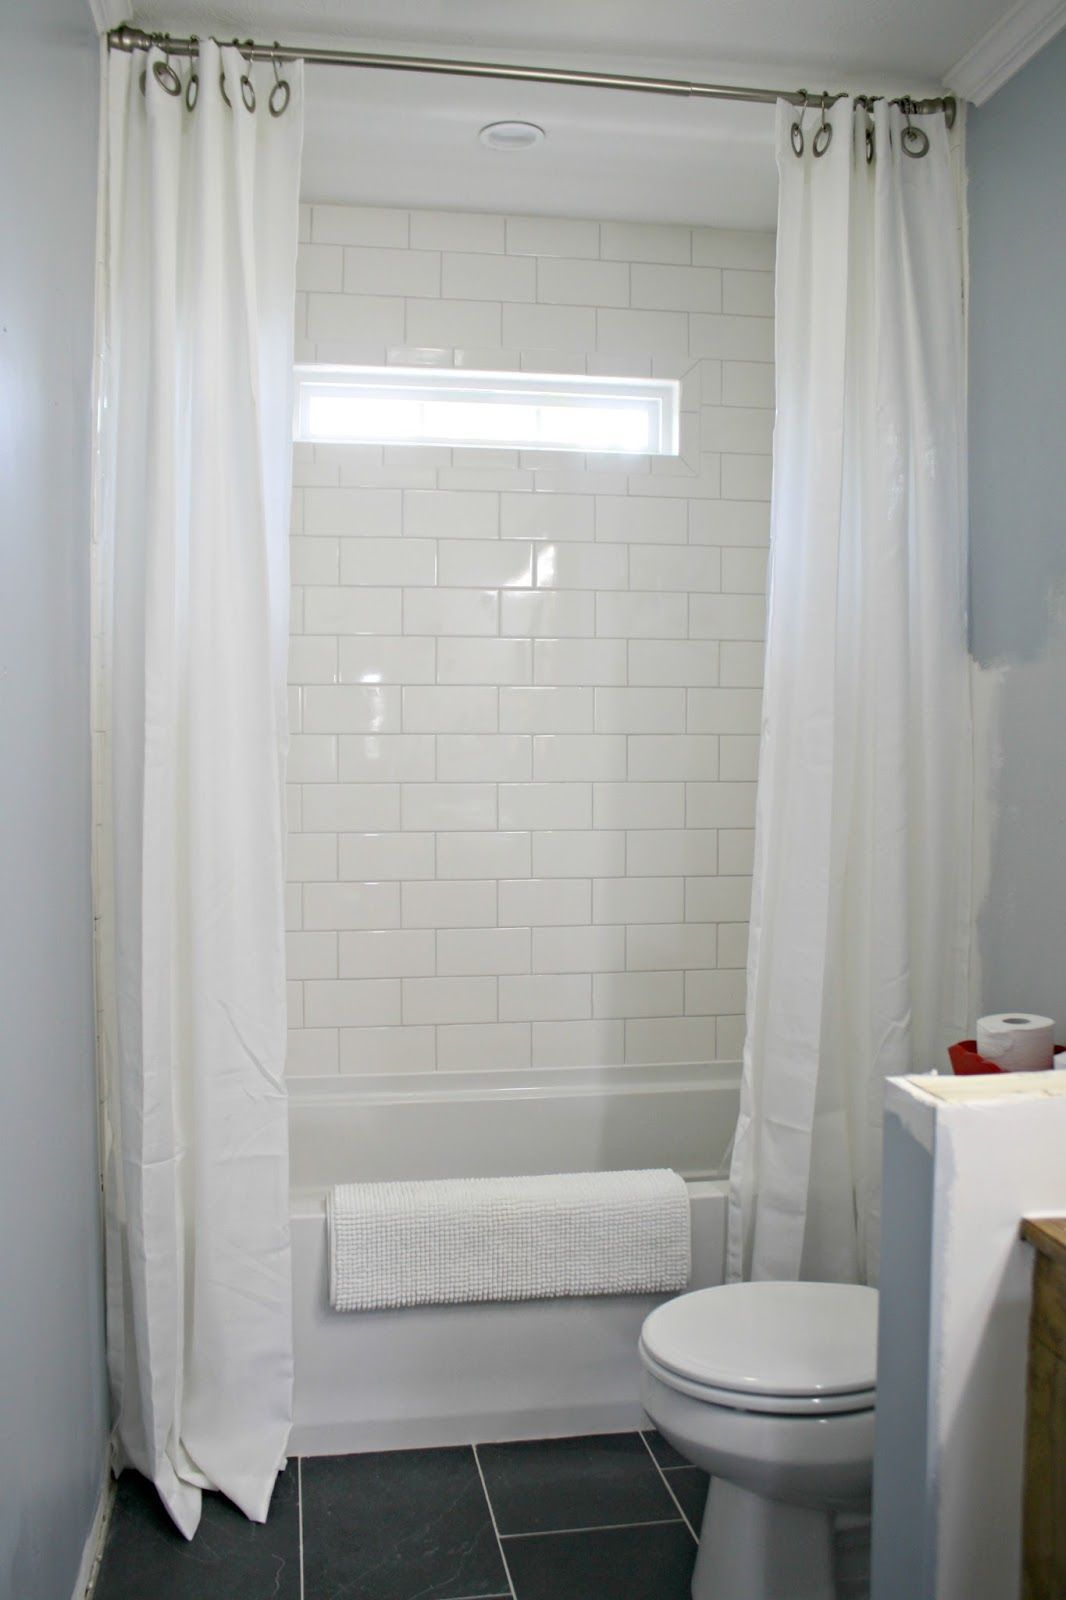 How To Use Drapes On Shower For Double Curtain Look Double